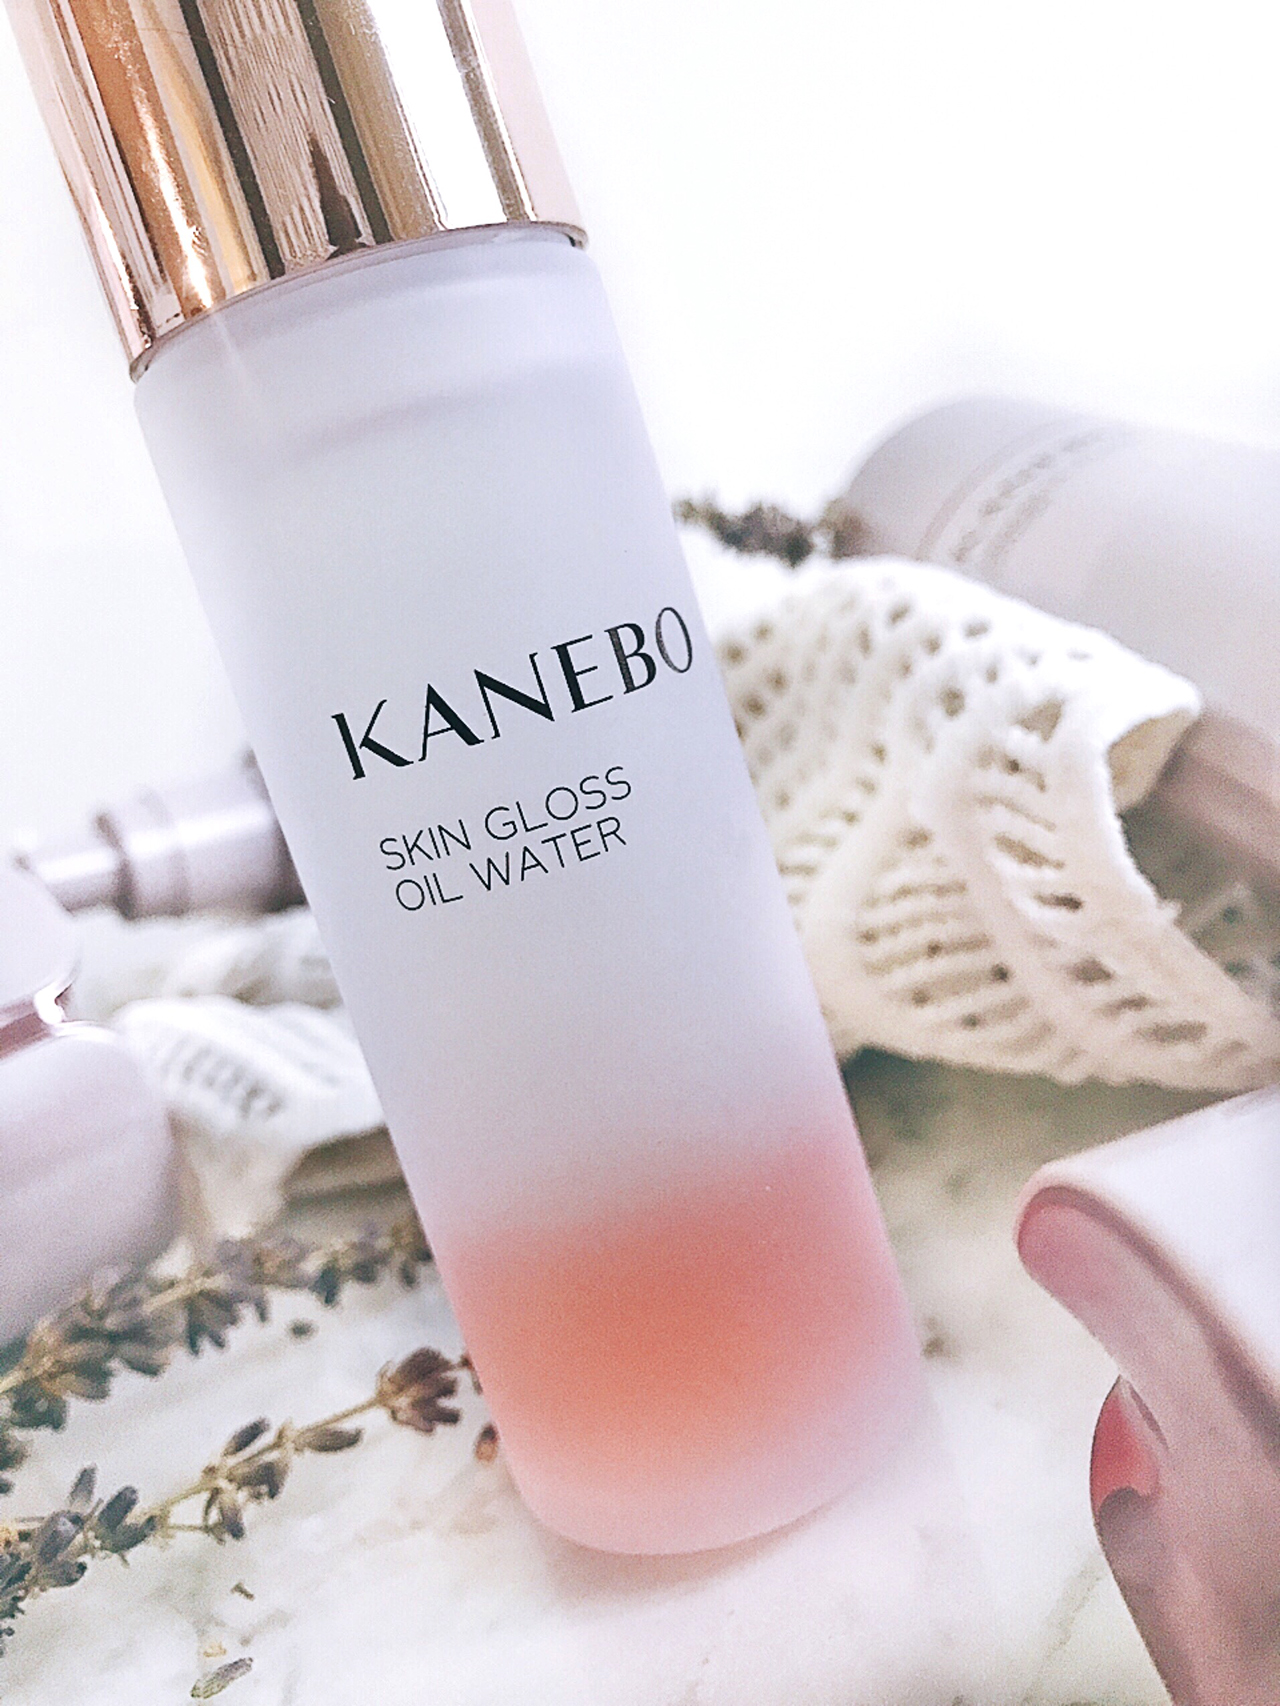 Kanebo Skin Gloss Oil Water